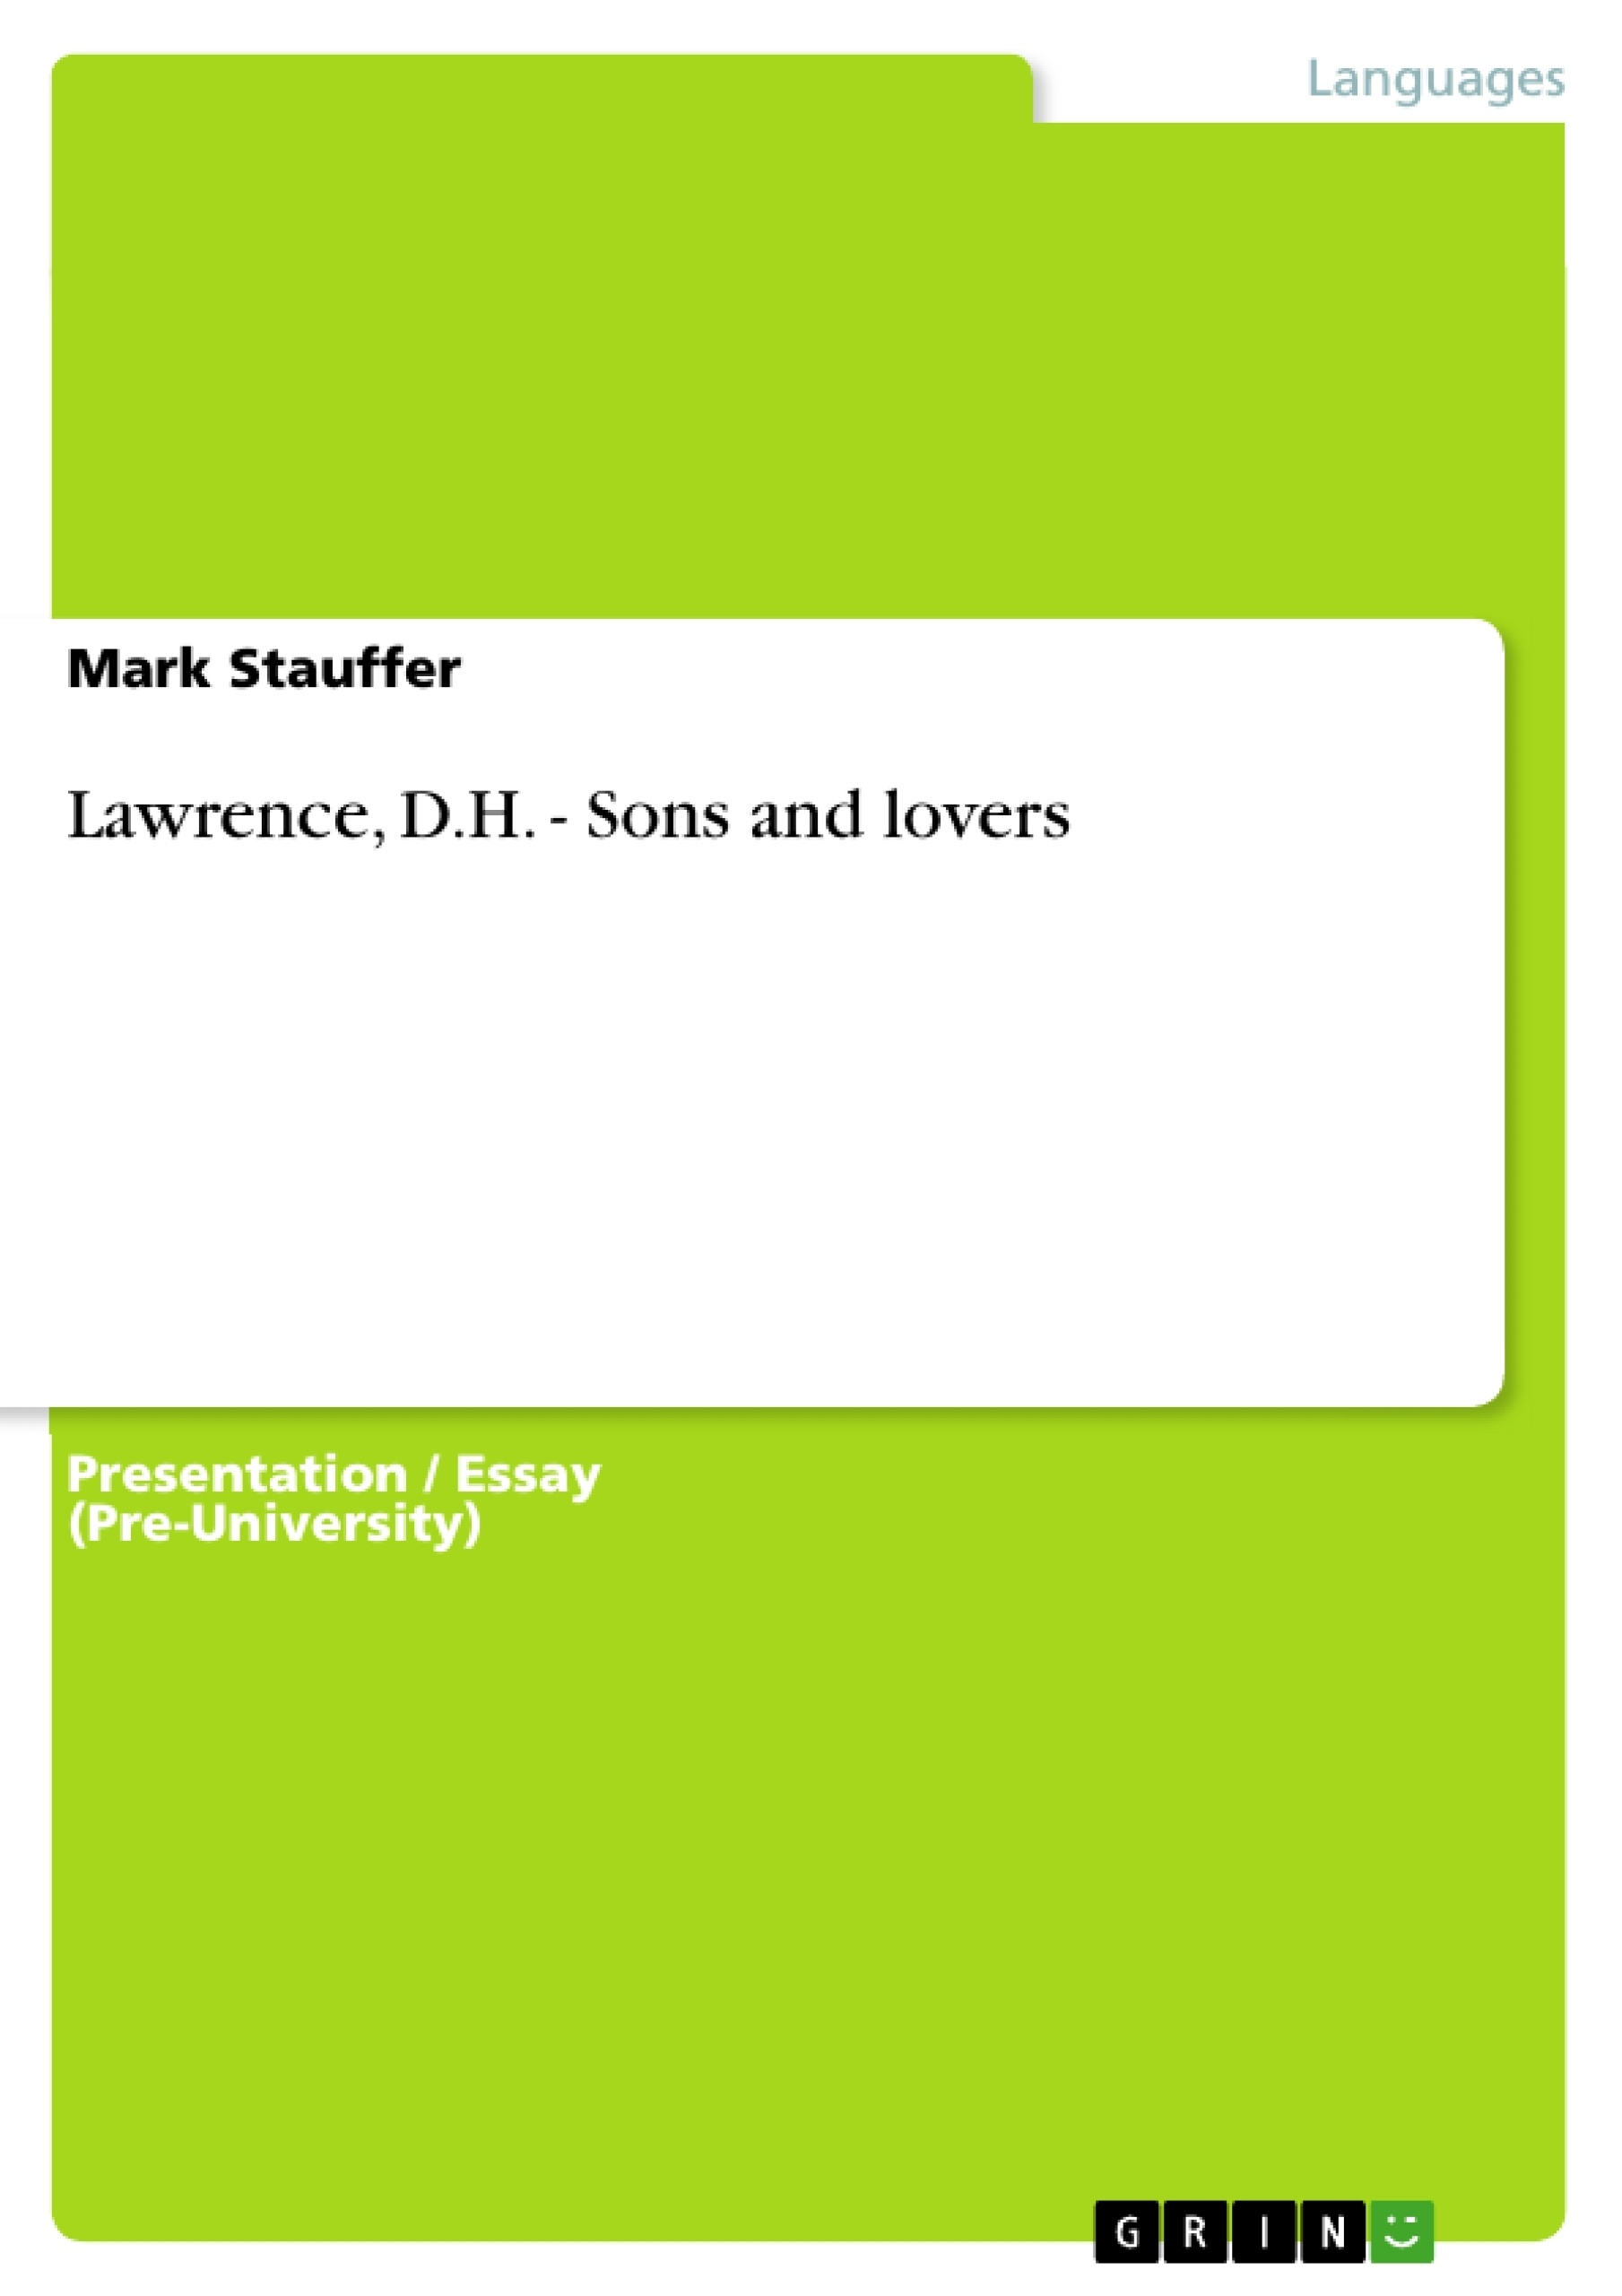 sons and lovers dh lawrance essay The penguin english library edition of sons and lovers by d h lawrence 'she was a brazen hussy she wasn't to mark the publication of stop what you're doing and read this, a collection of essays celebrating reading.